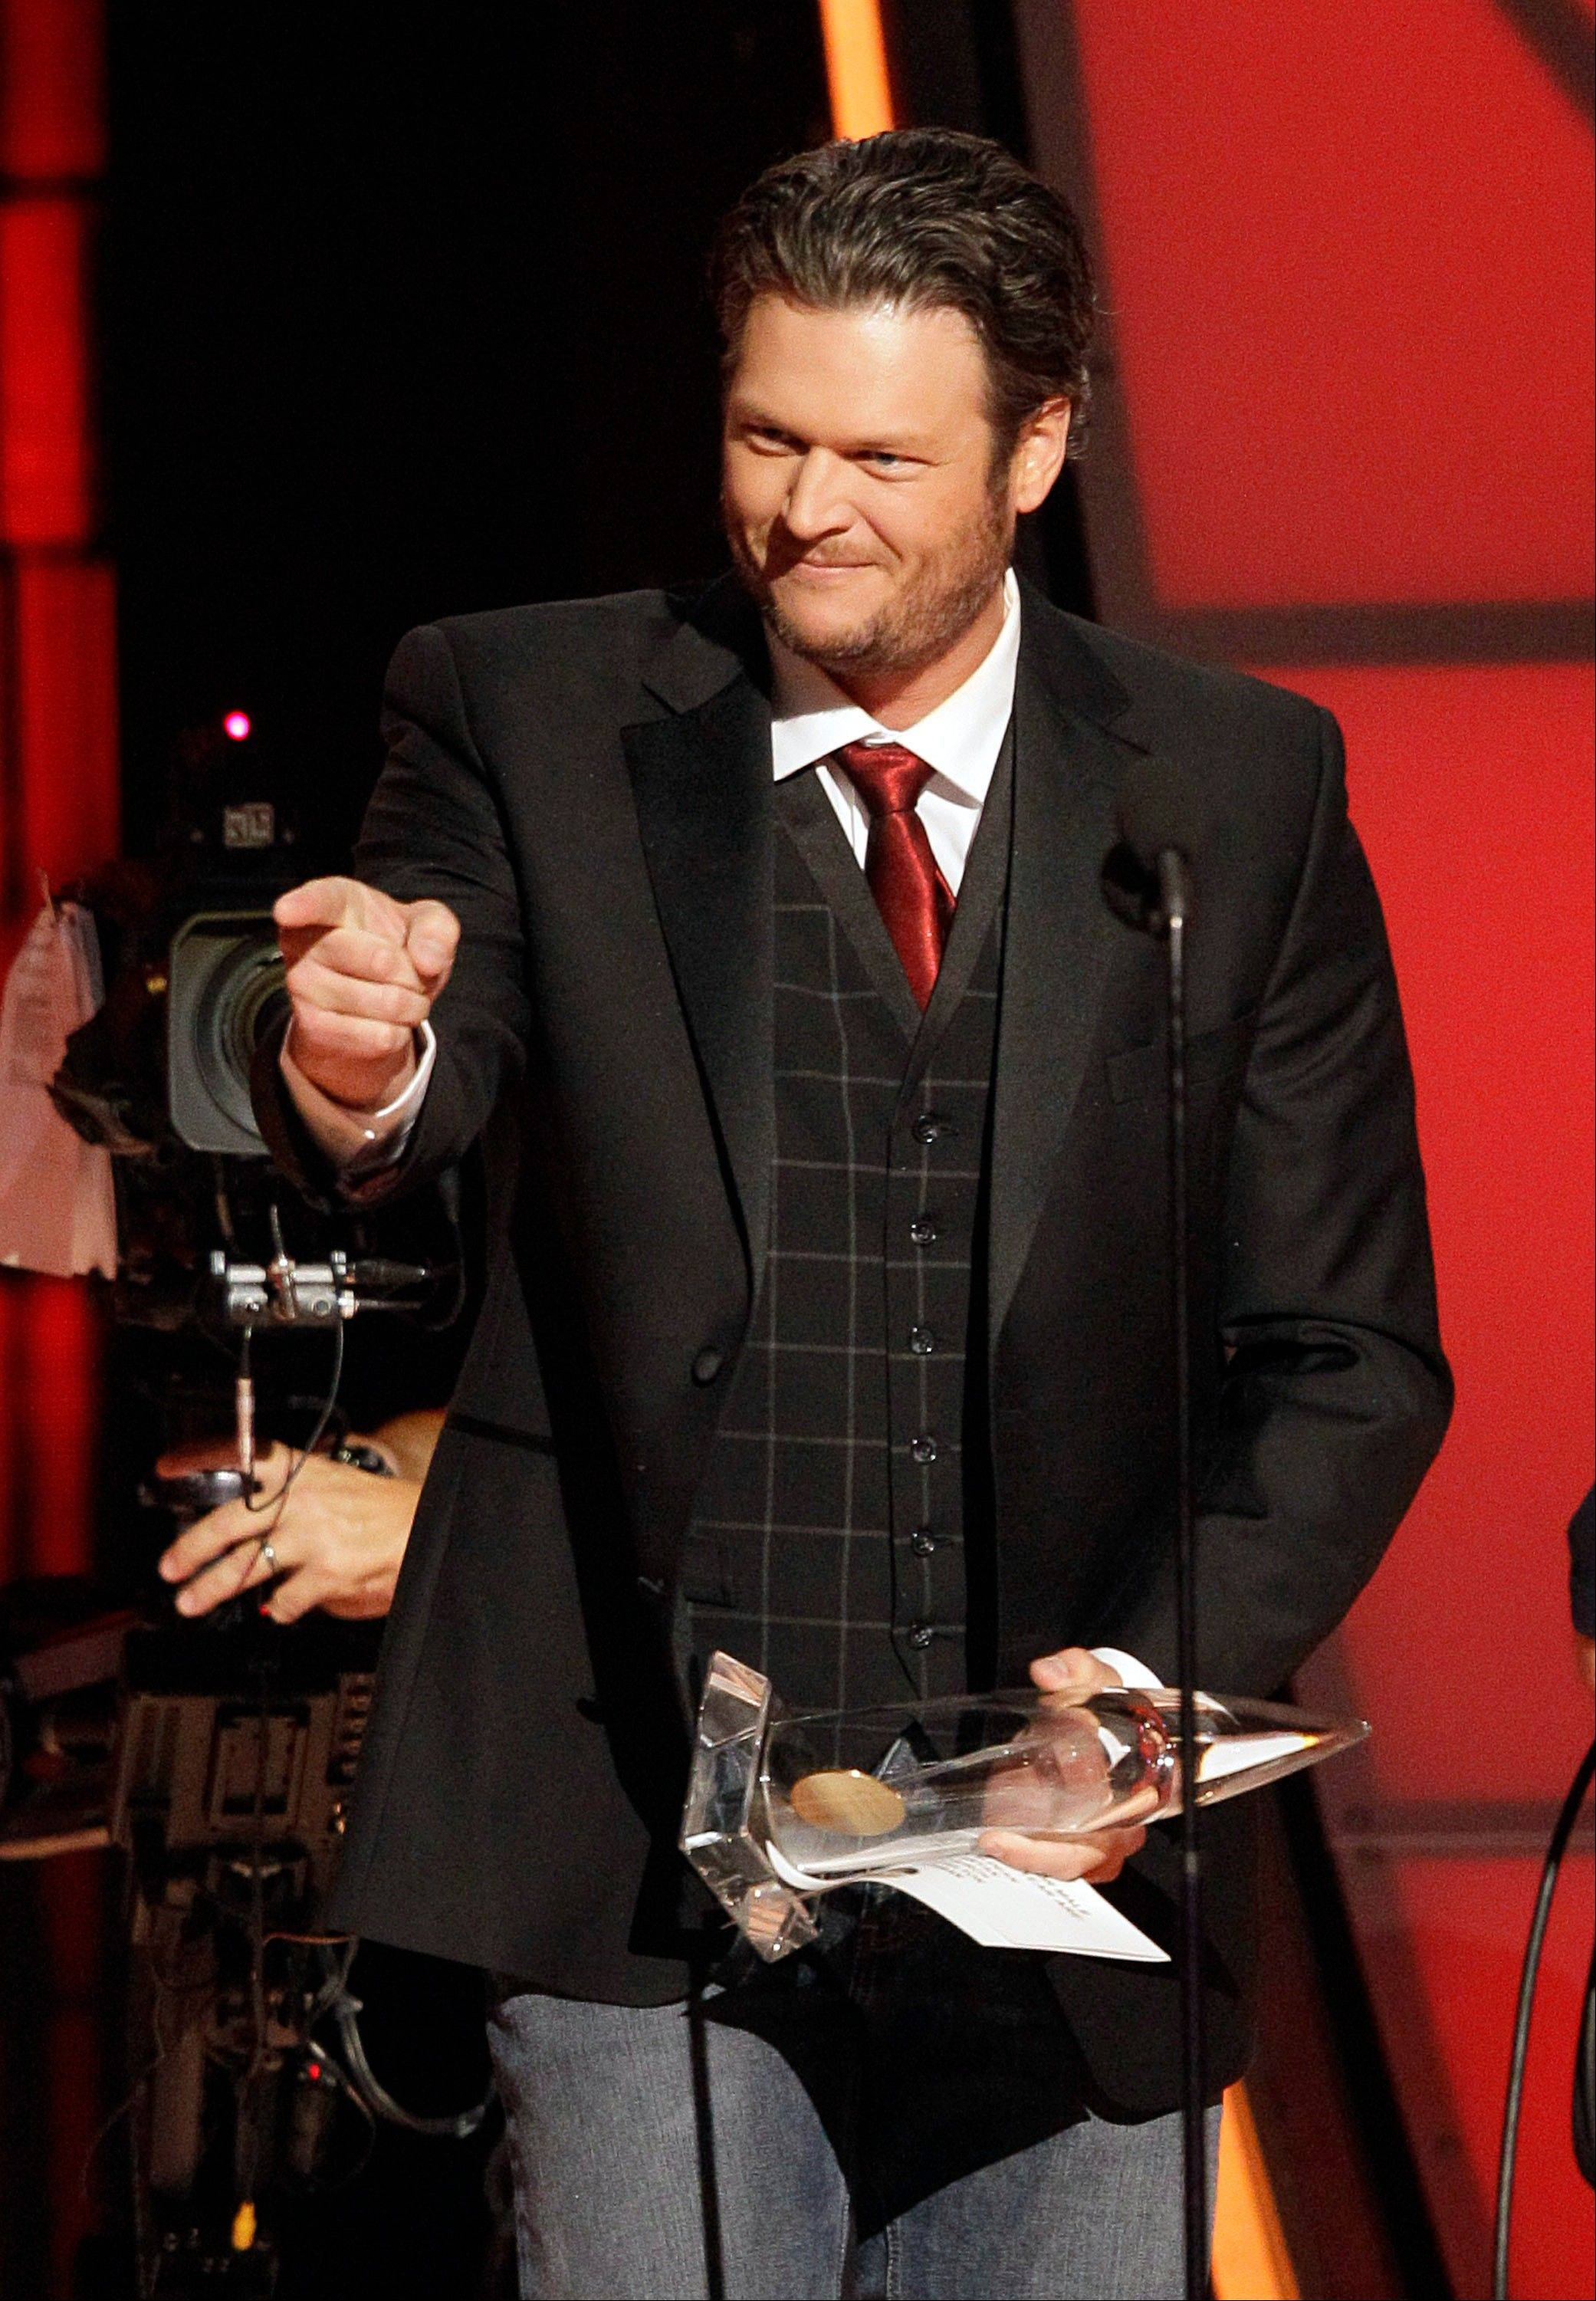 Blake Shelton accepts the award for male vocalist of the year Thursday at the 46th Annual Country Music Awards at the Bridgestone Arena in Nashville, Tenn.